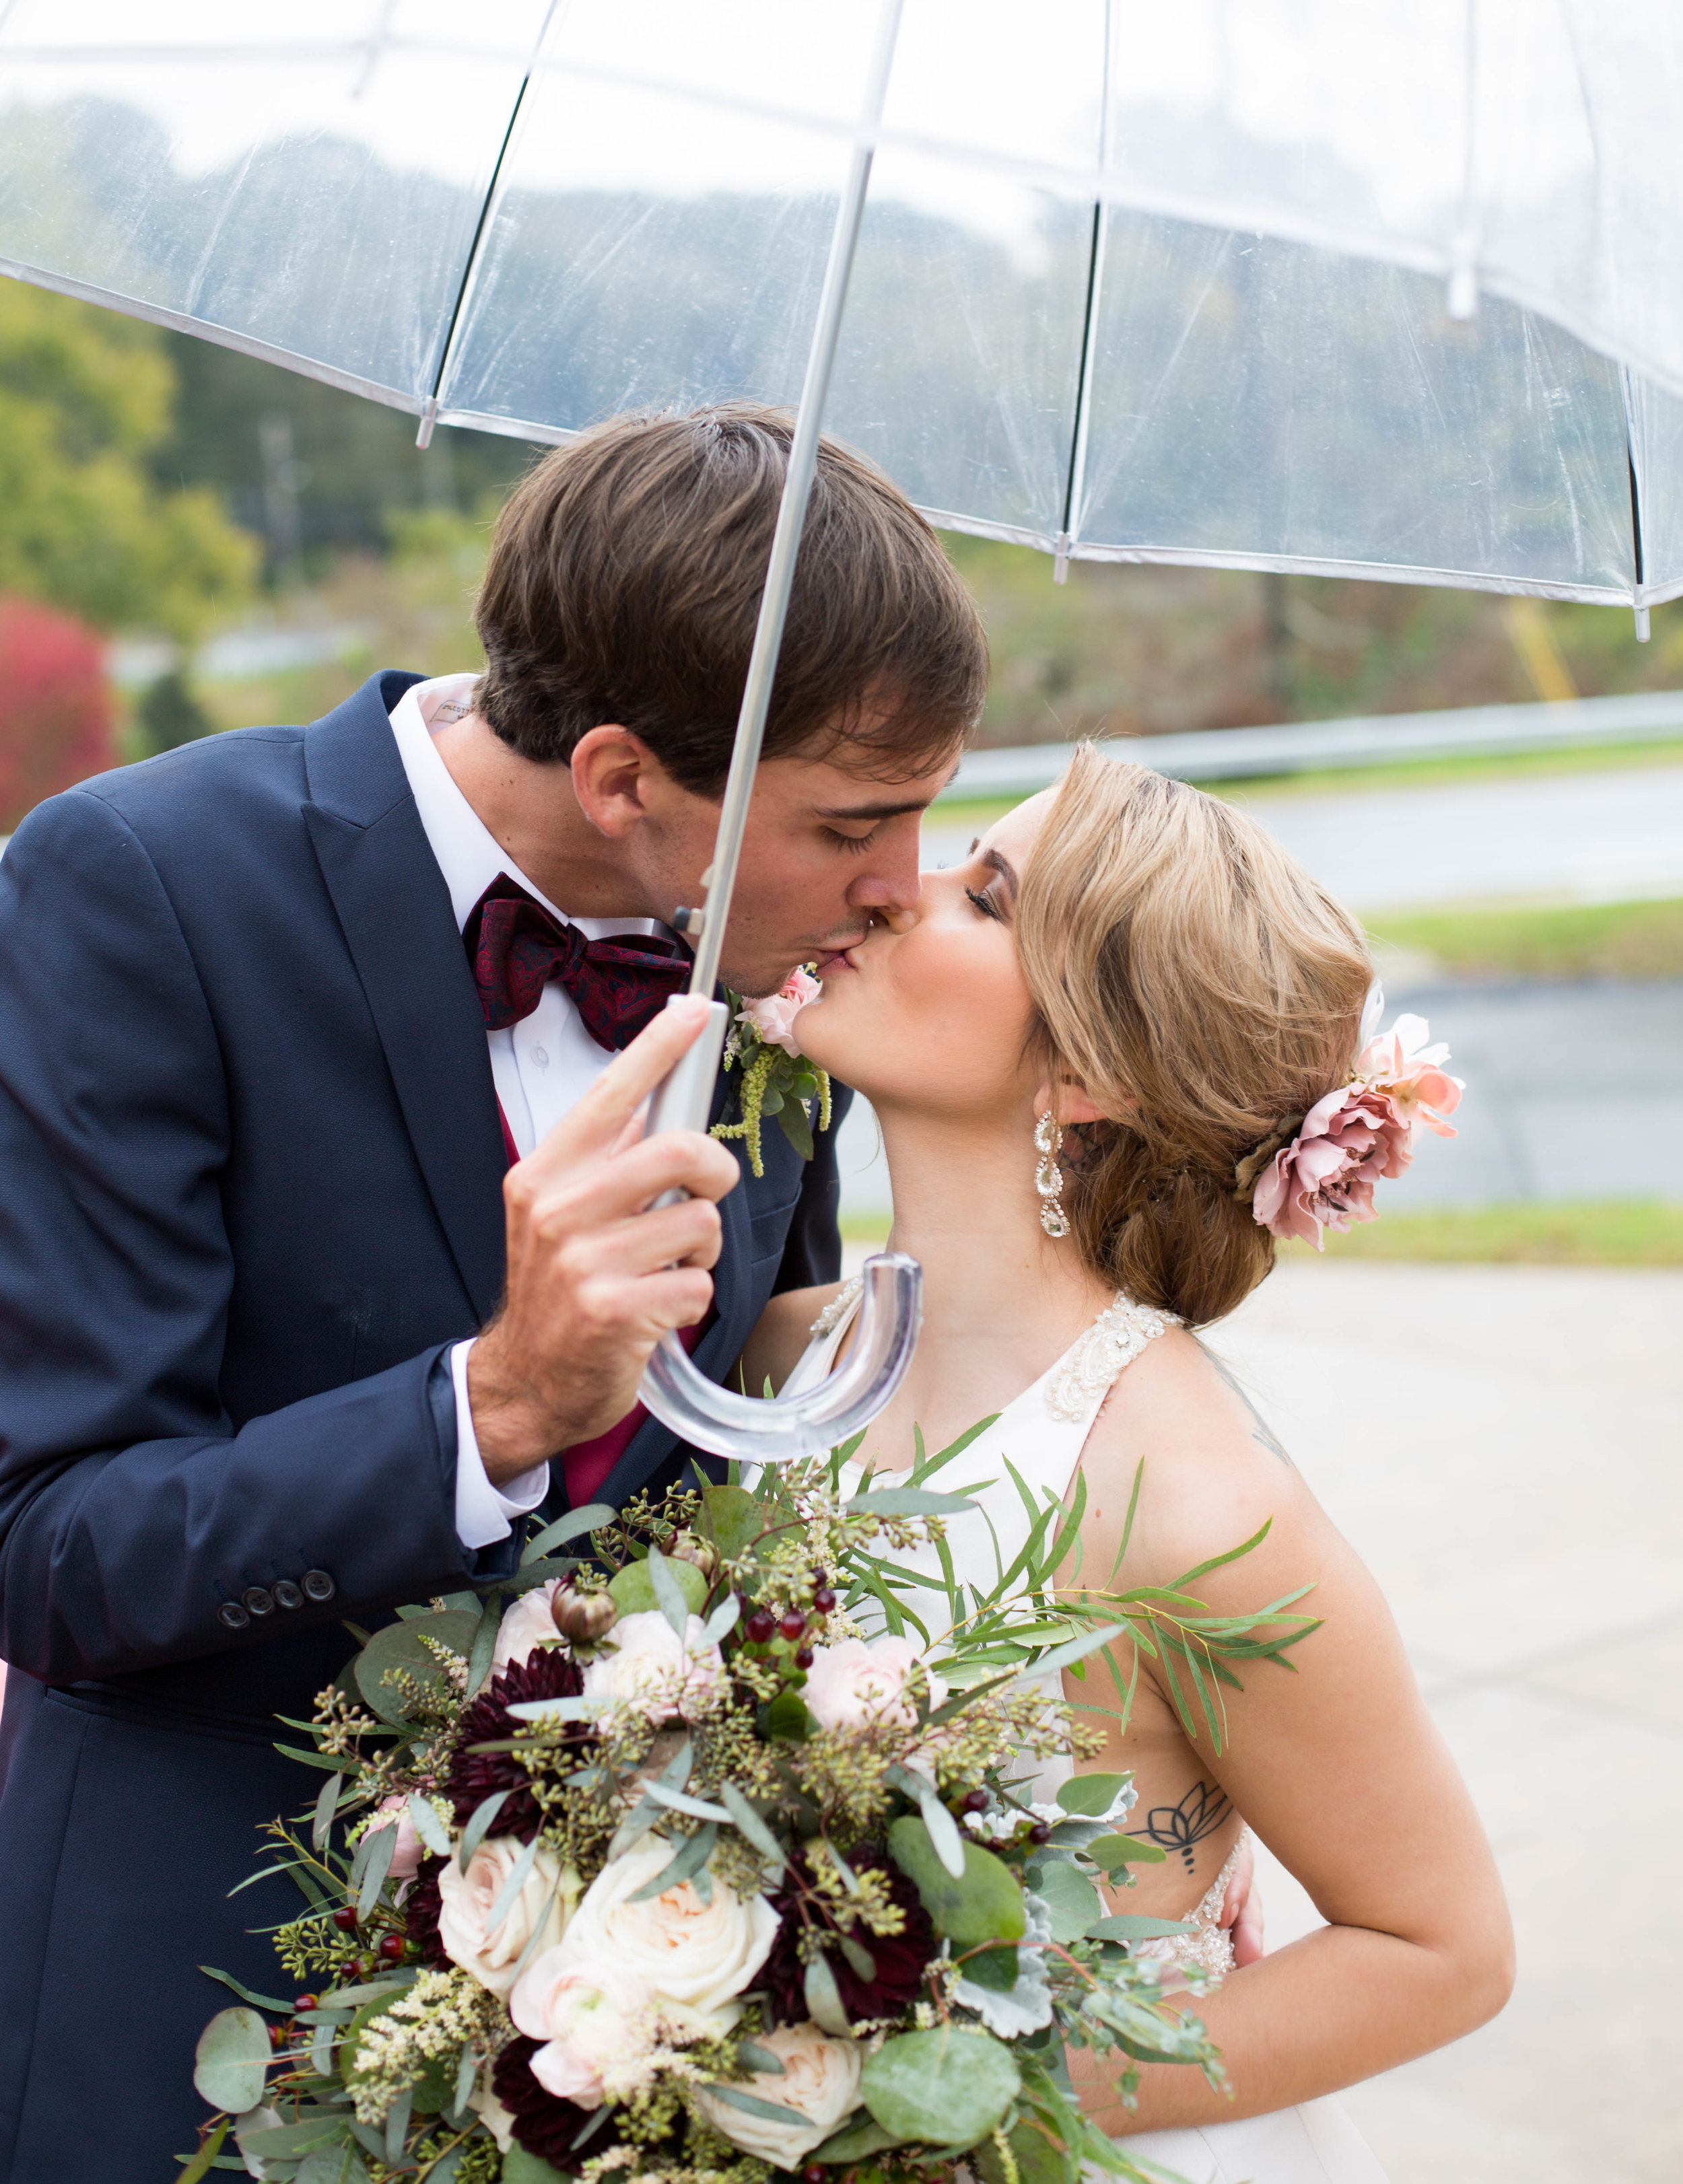 - These two make rainy days look good! We had such a great time capturing Tyler and Kassidi's wedding day. We wish you guys a lifetime of love and happiness!